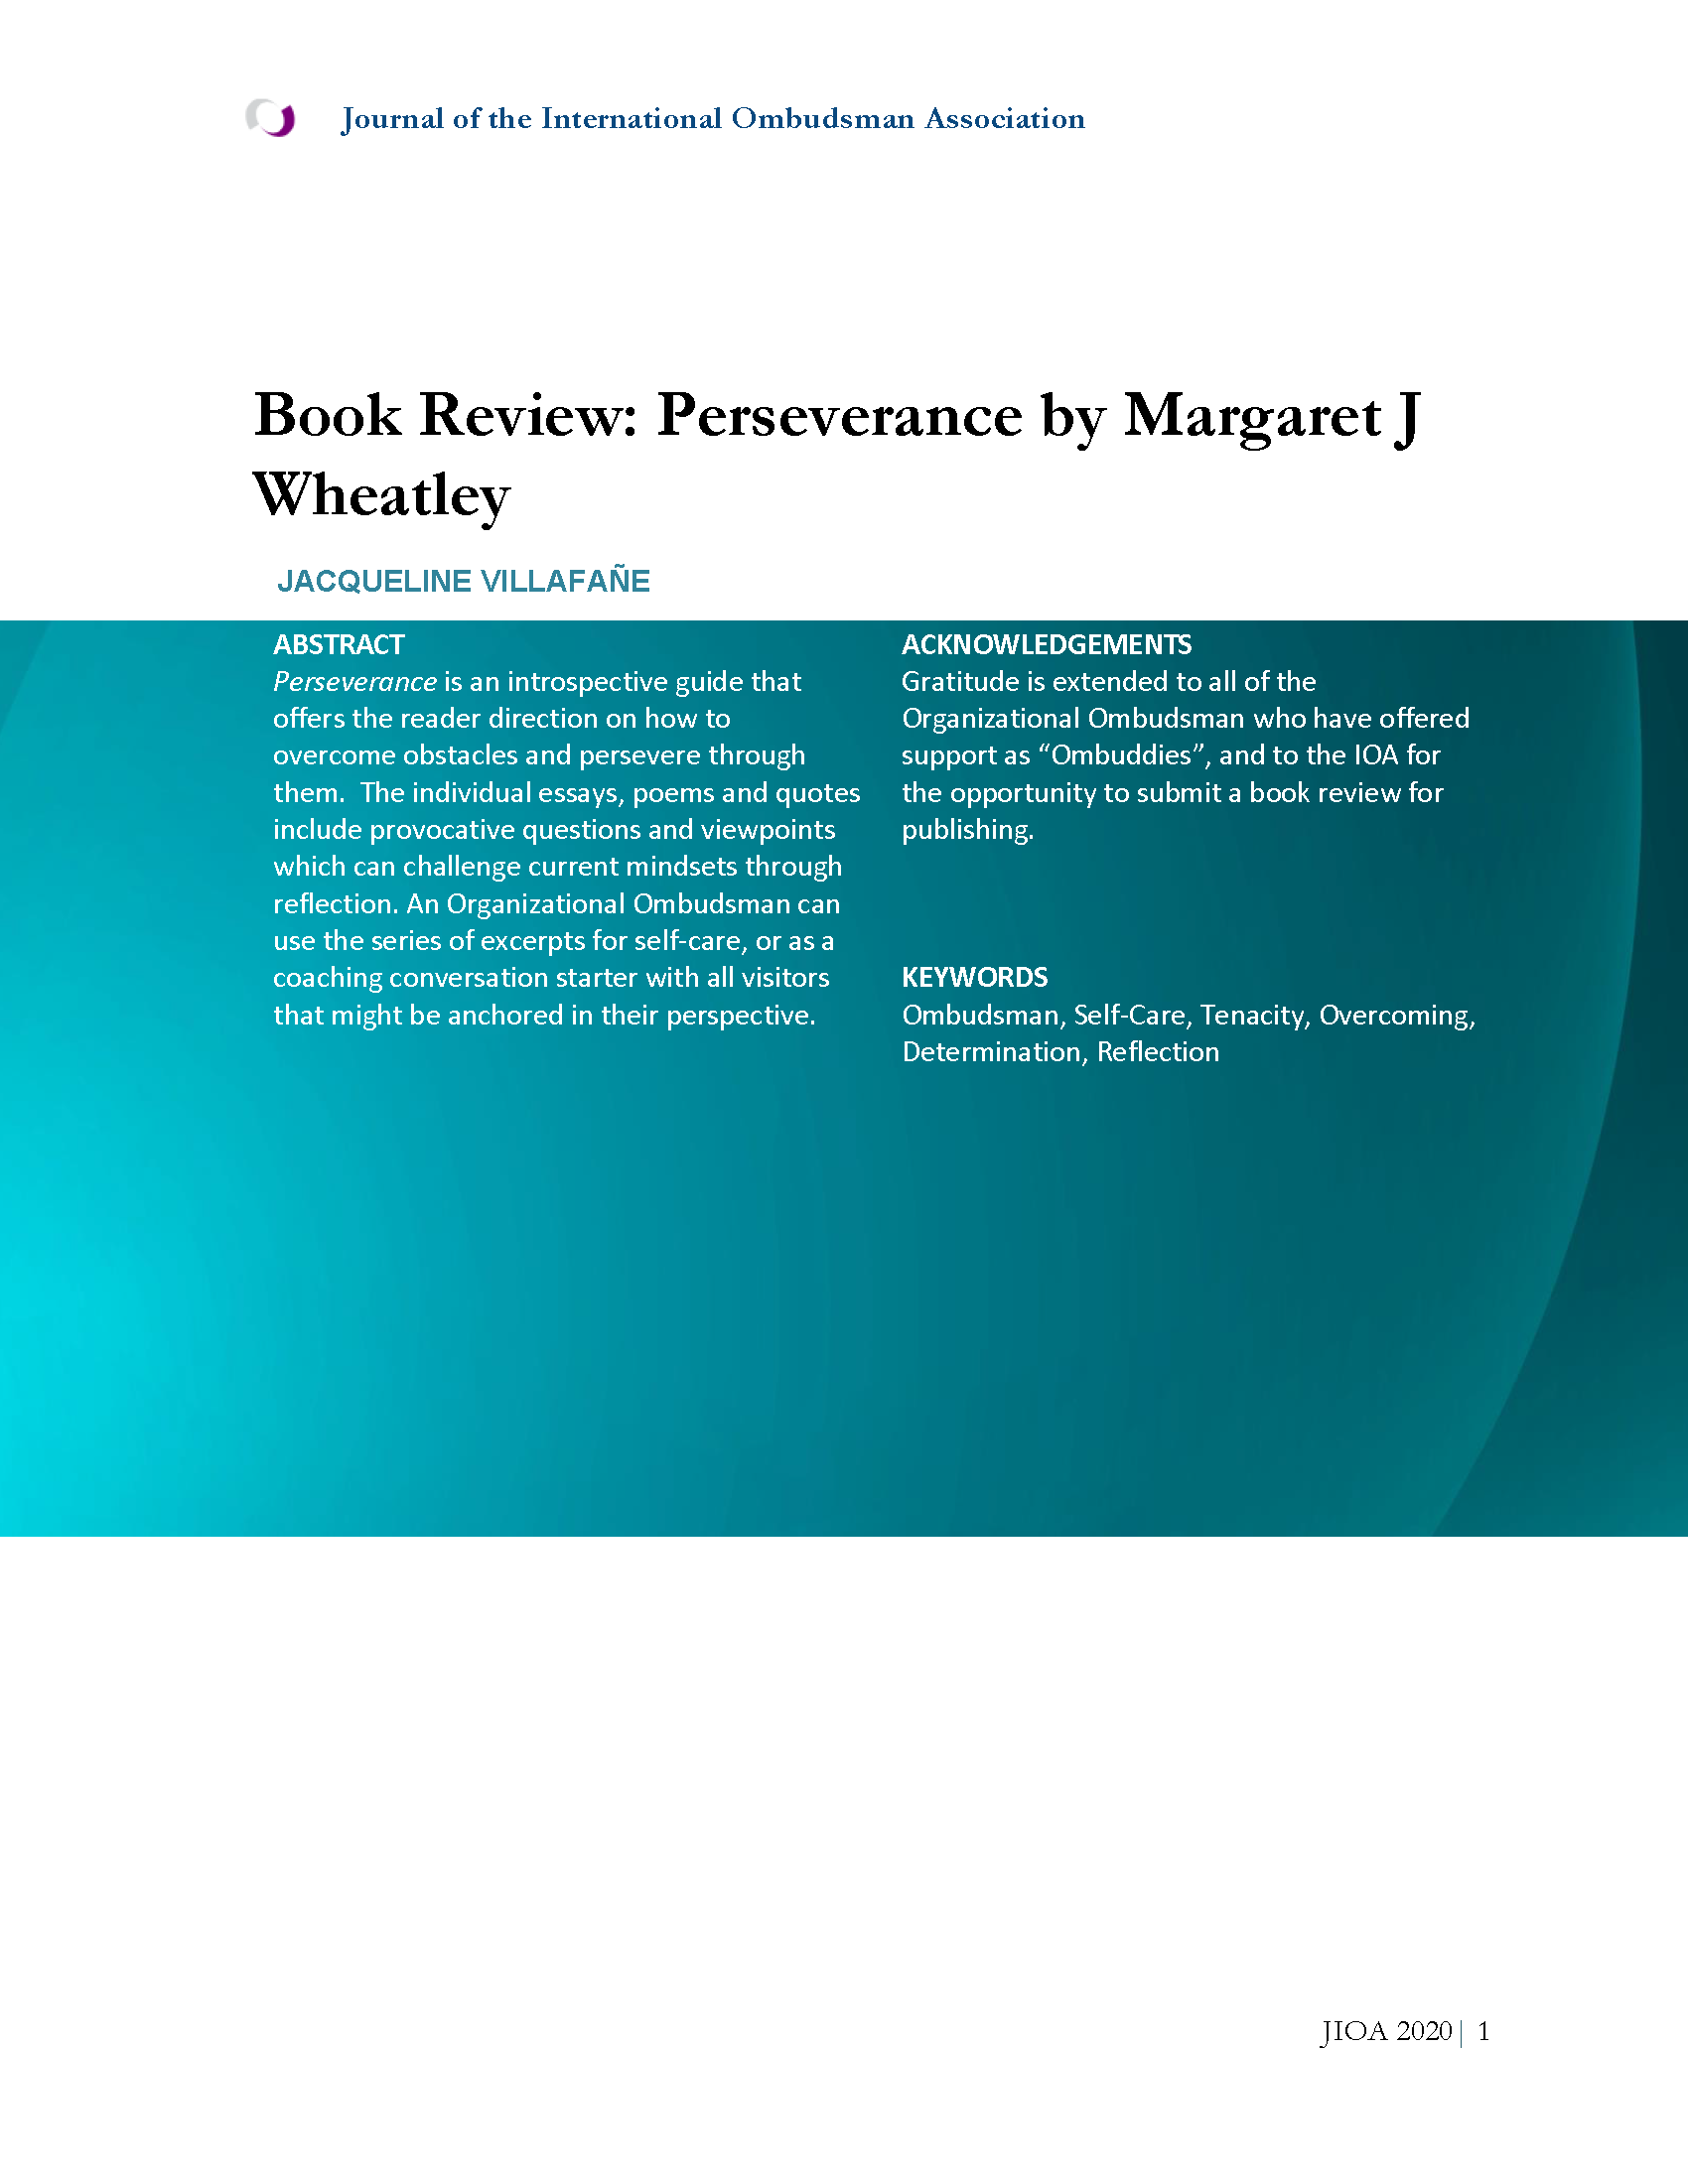 Cover Page for Book Review: Perseverance by Margaret J Wheatley